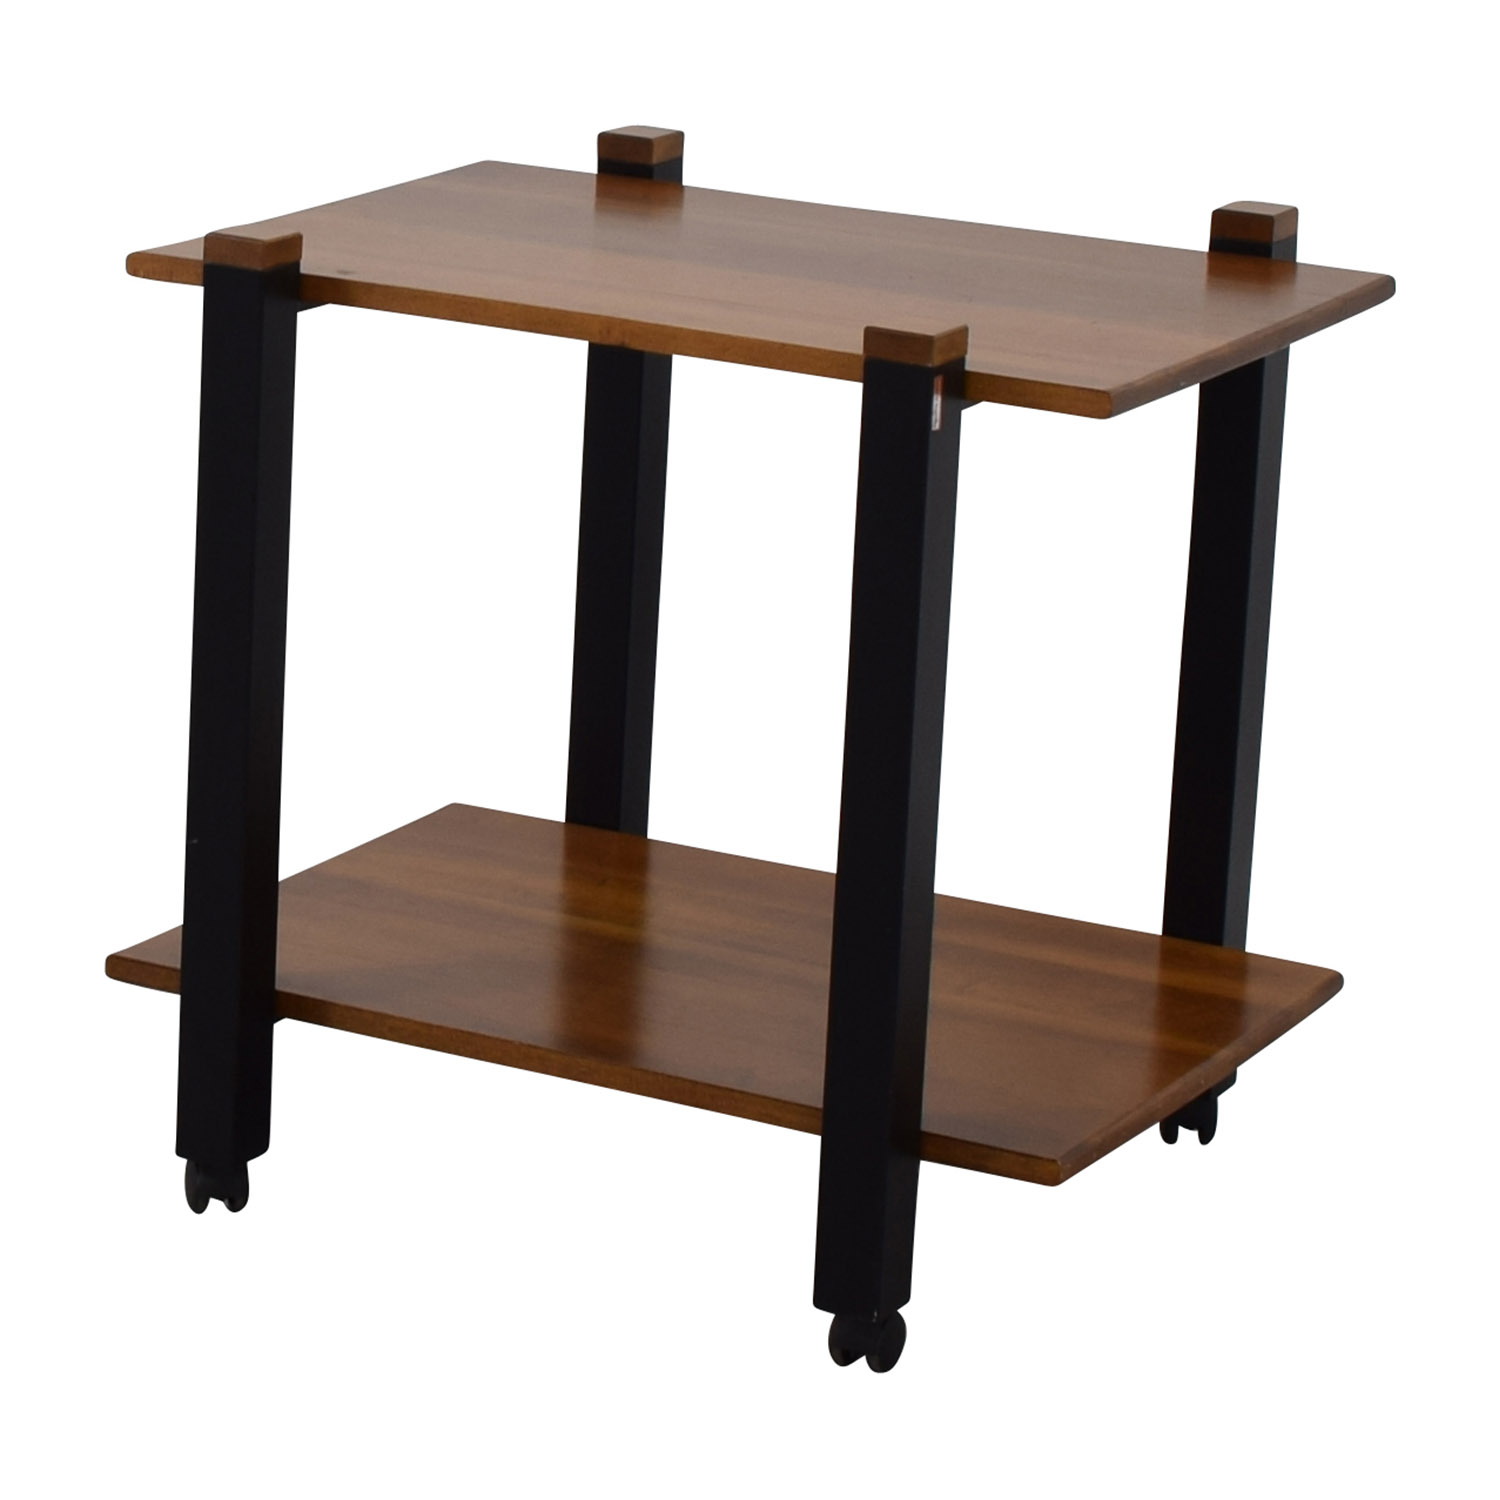 82 Off Pottery Barn Pottery Barn Rolling Stand Storage